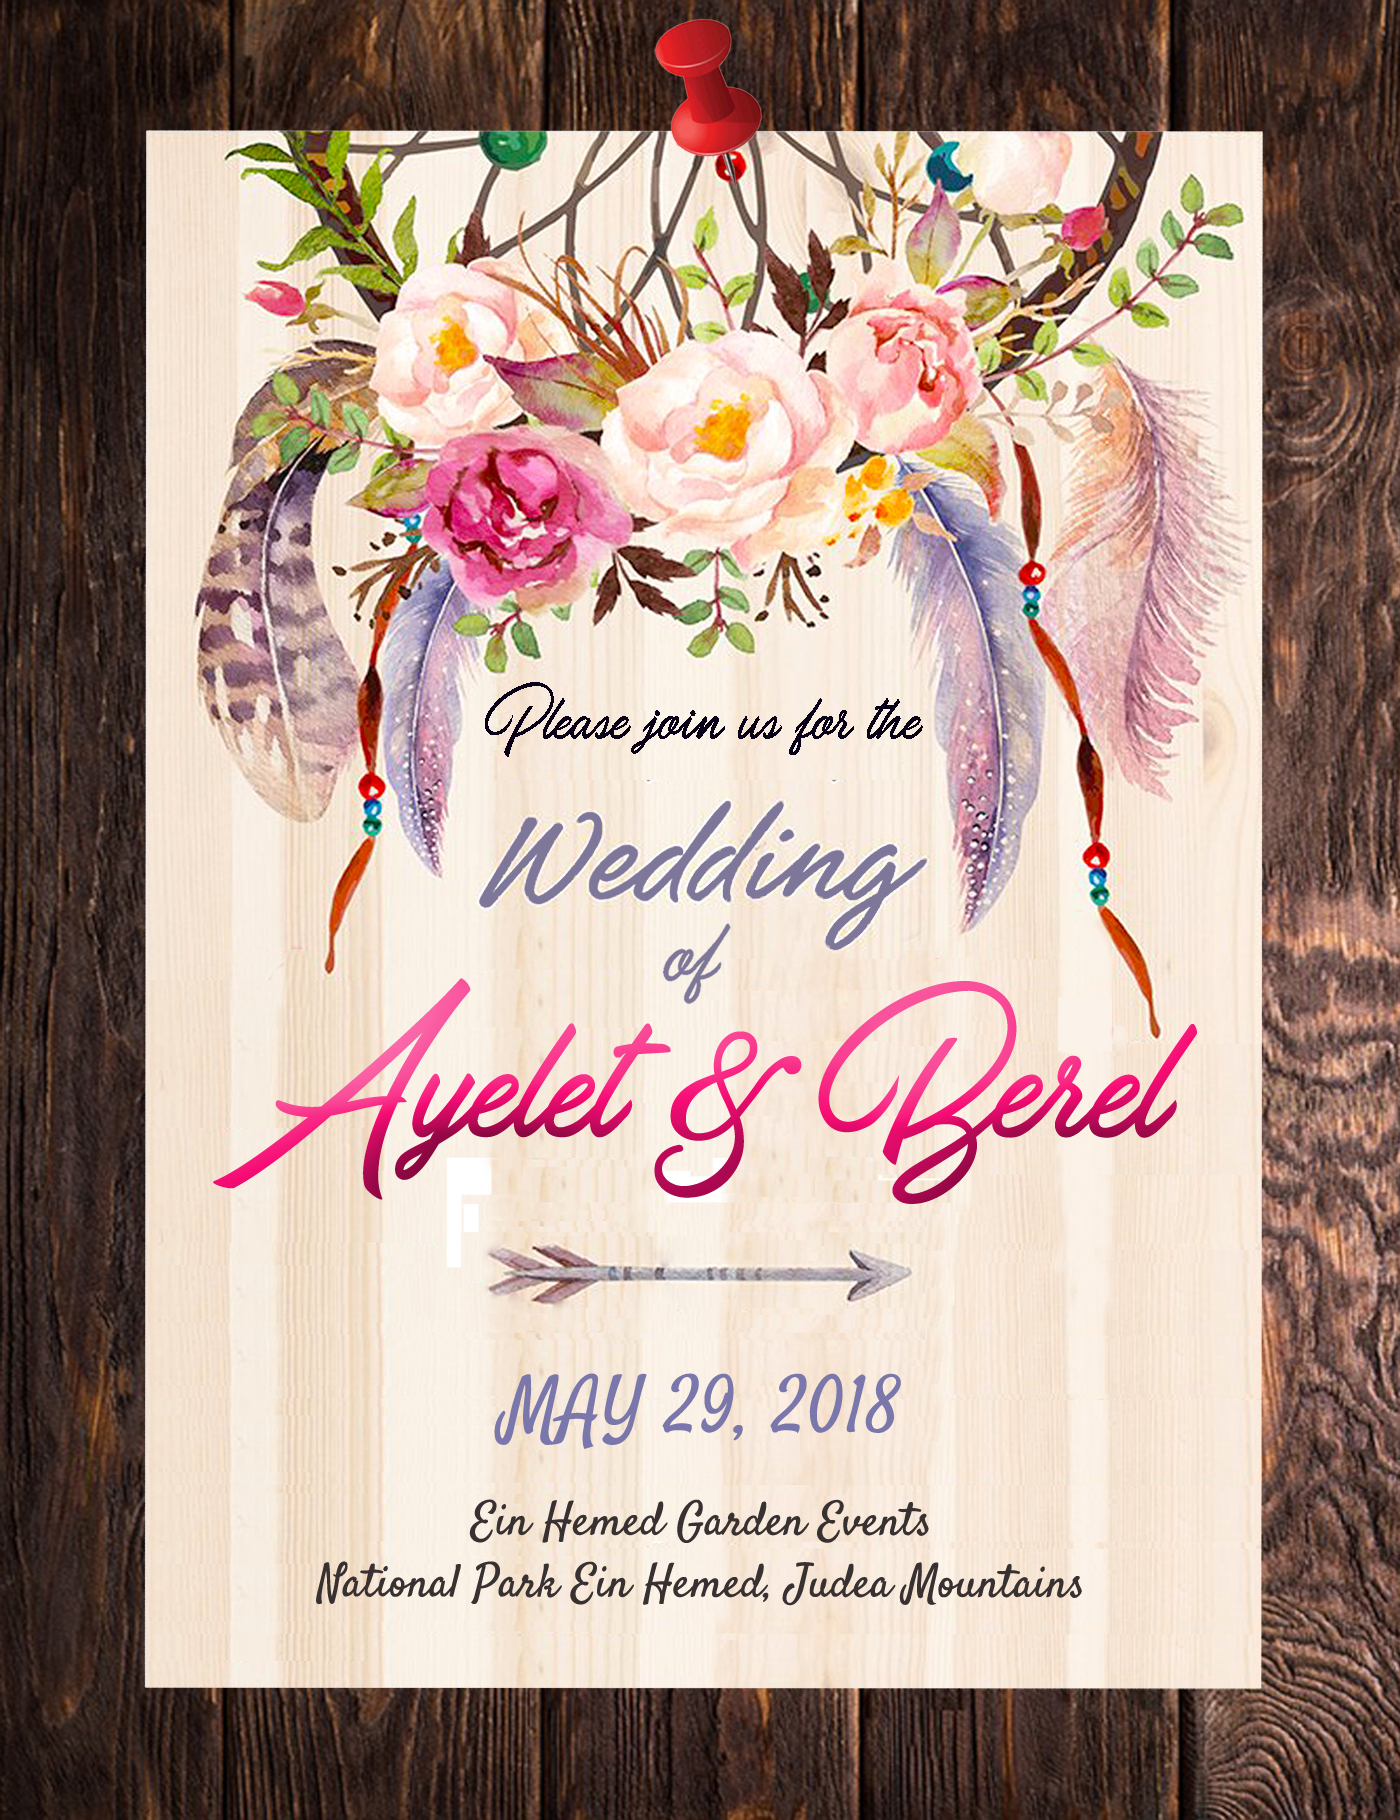 Ayelet and Berl invite good